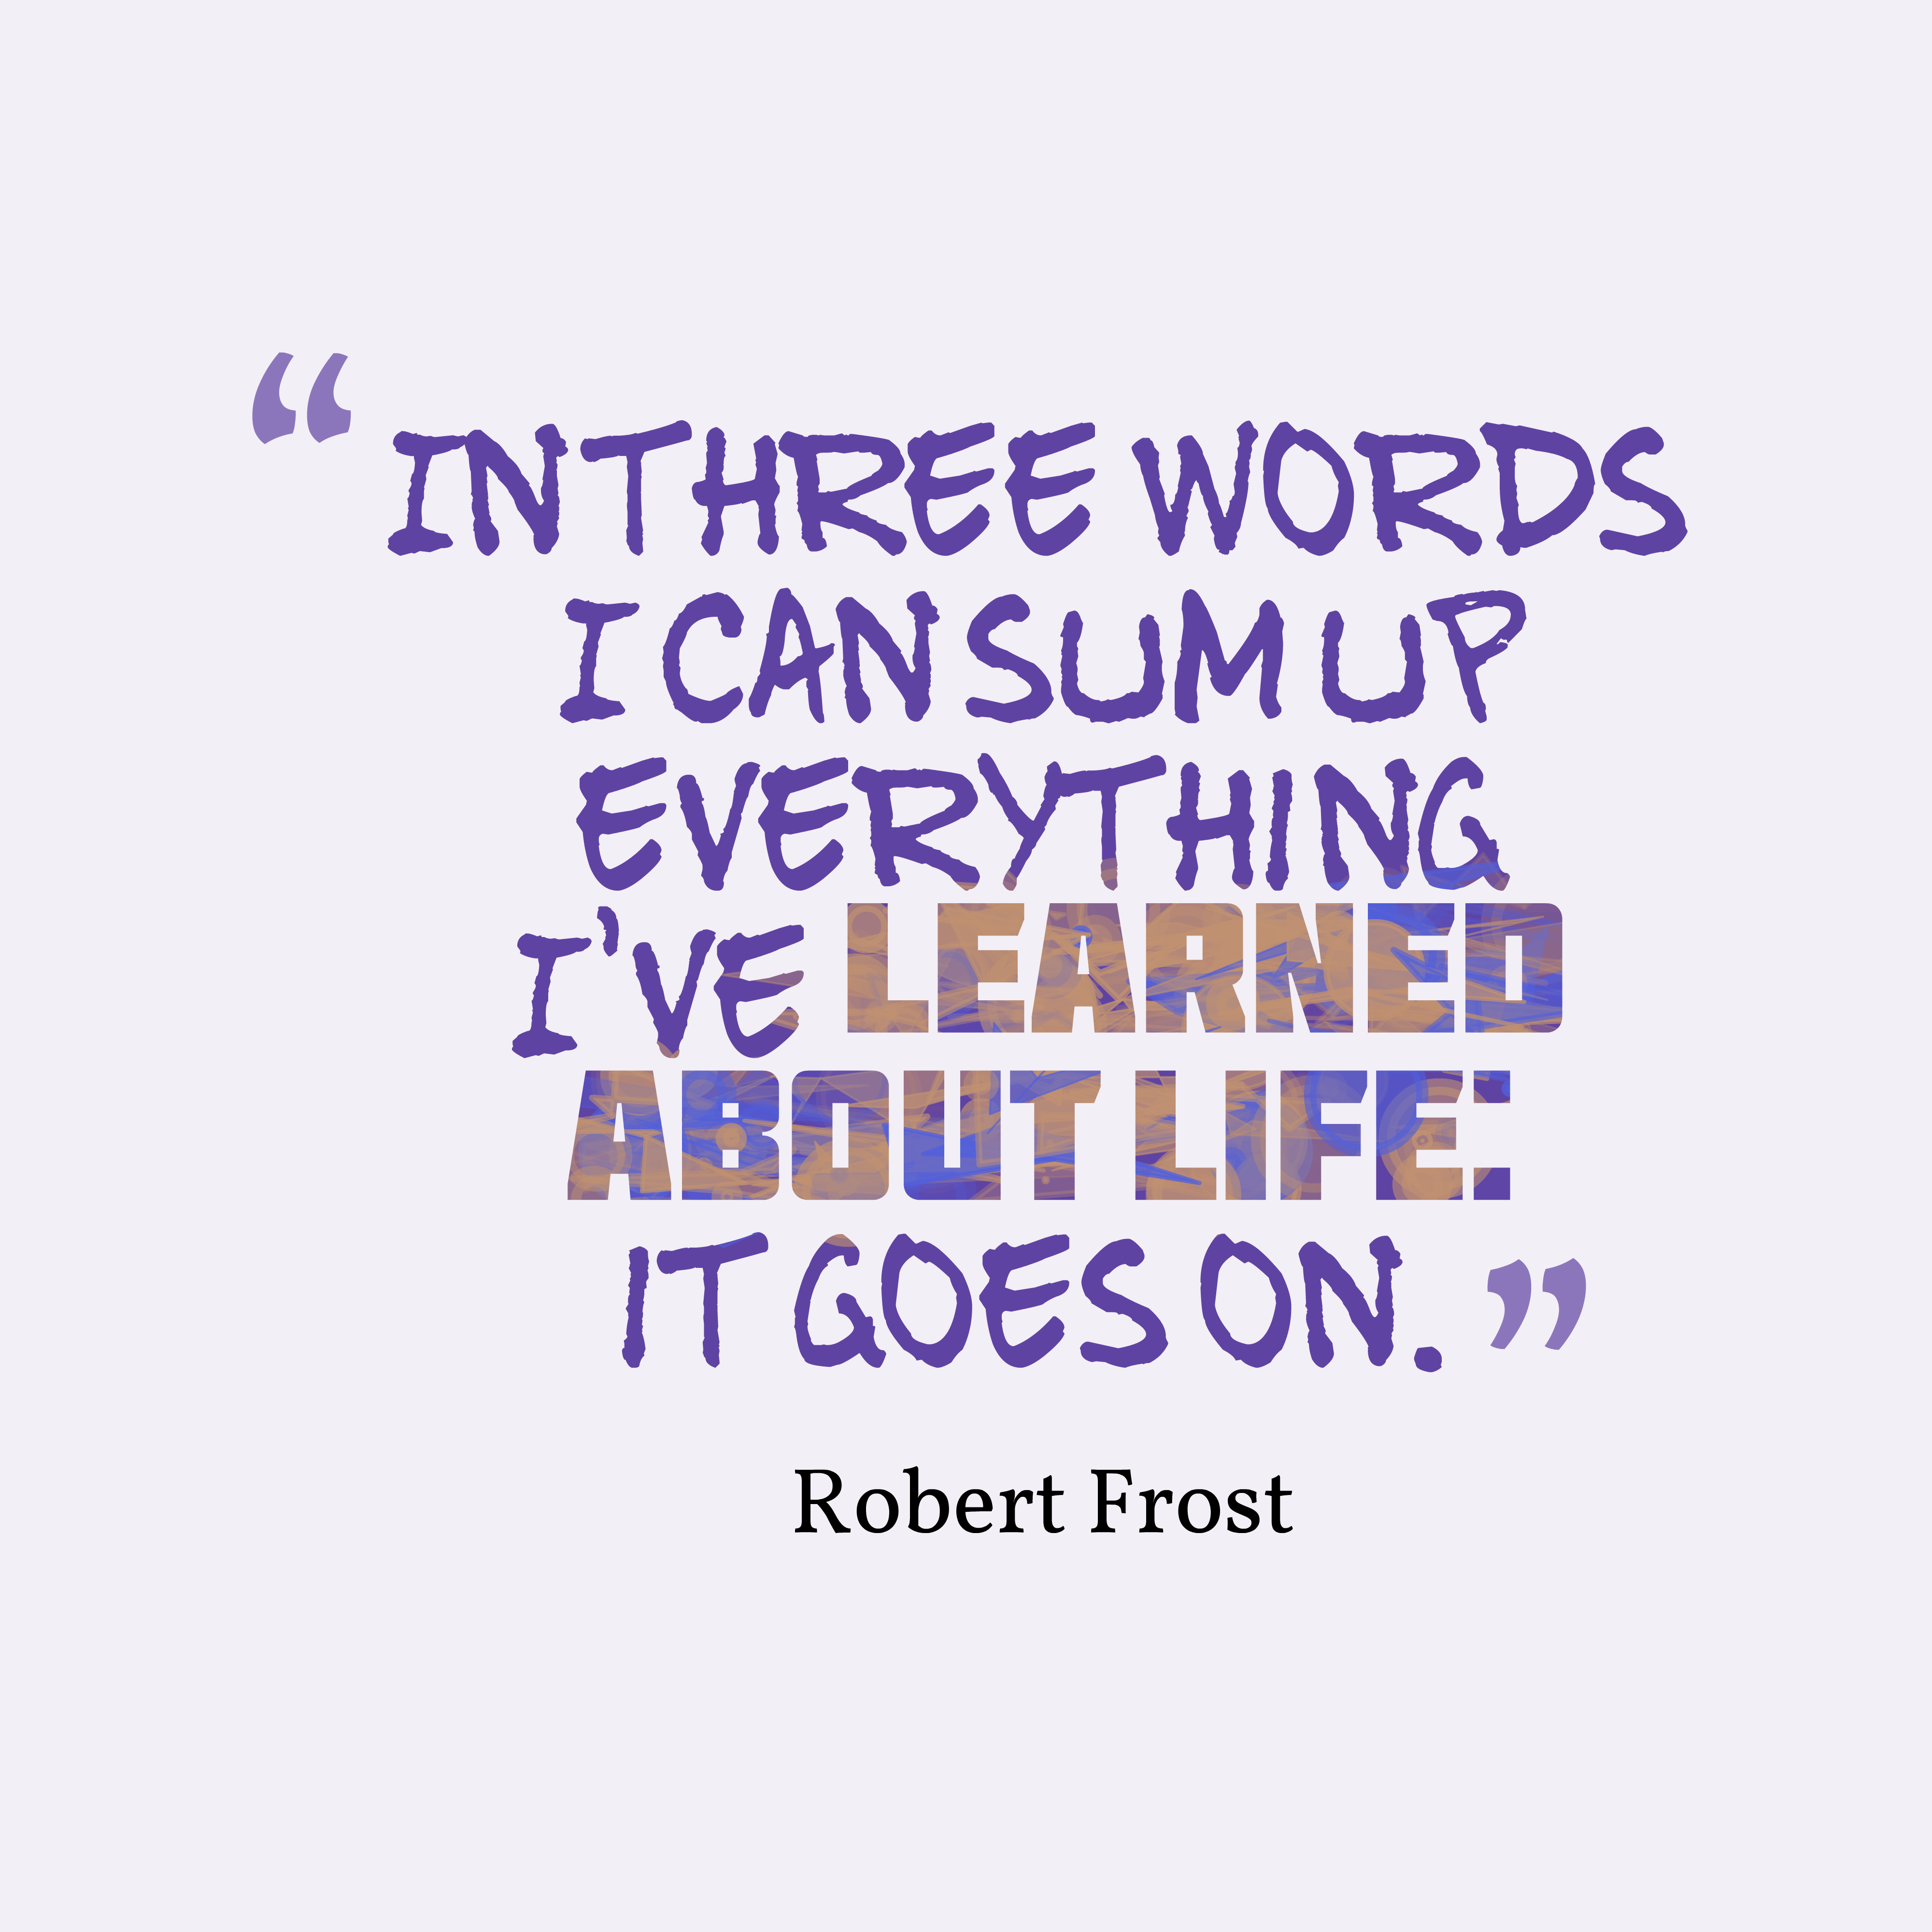 robert frost lessons of life English grammar lessons wrote about the simple beauty in nature as well as his observations of life in poetry for the library of congressrobert frost.